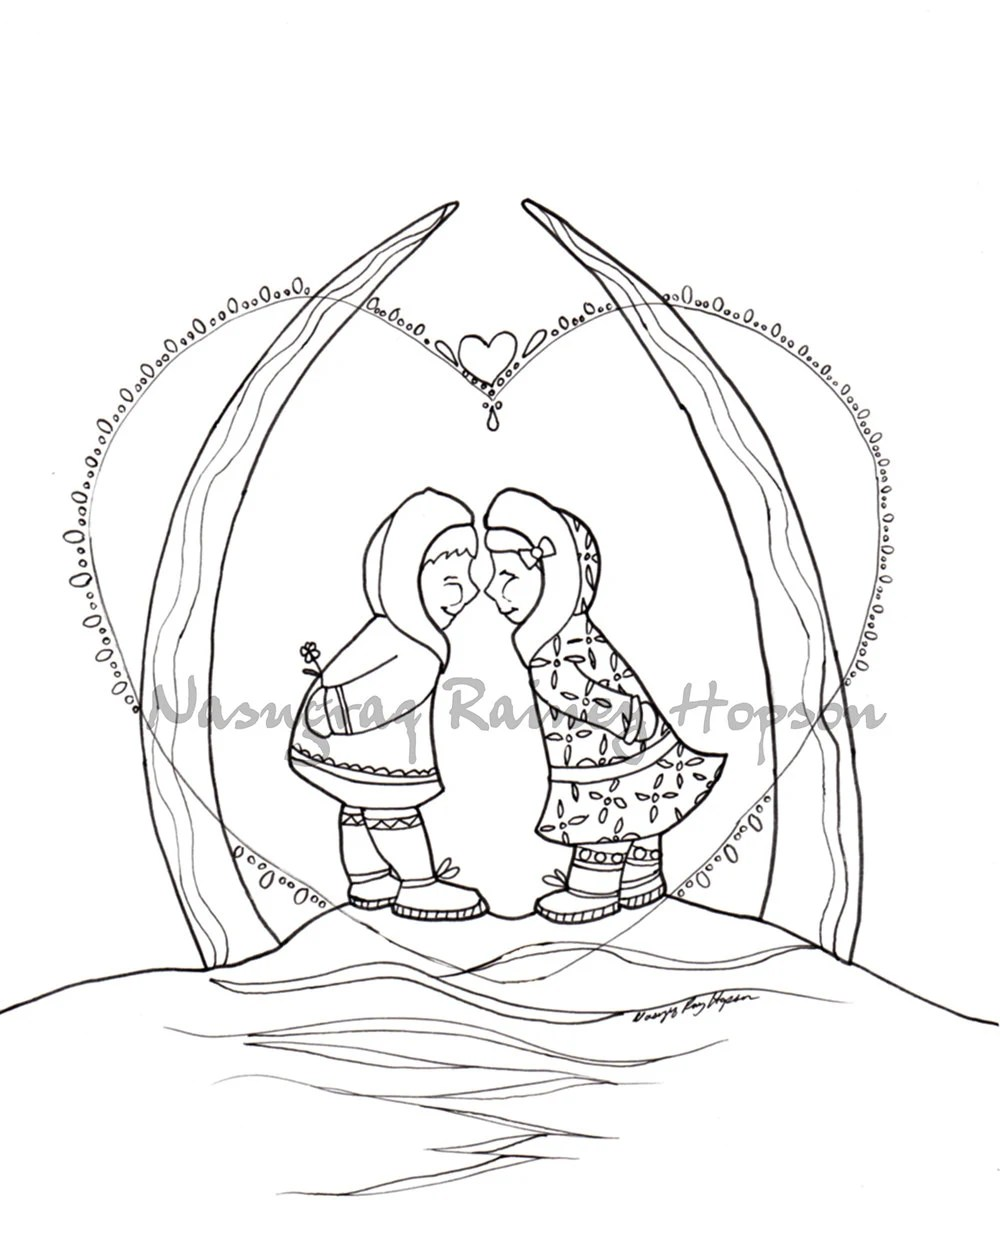 Arctic Kiss hand drawn Alaska Native Coloring Page